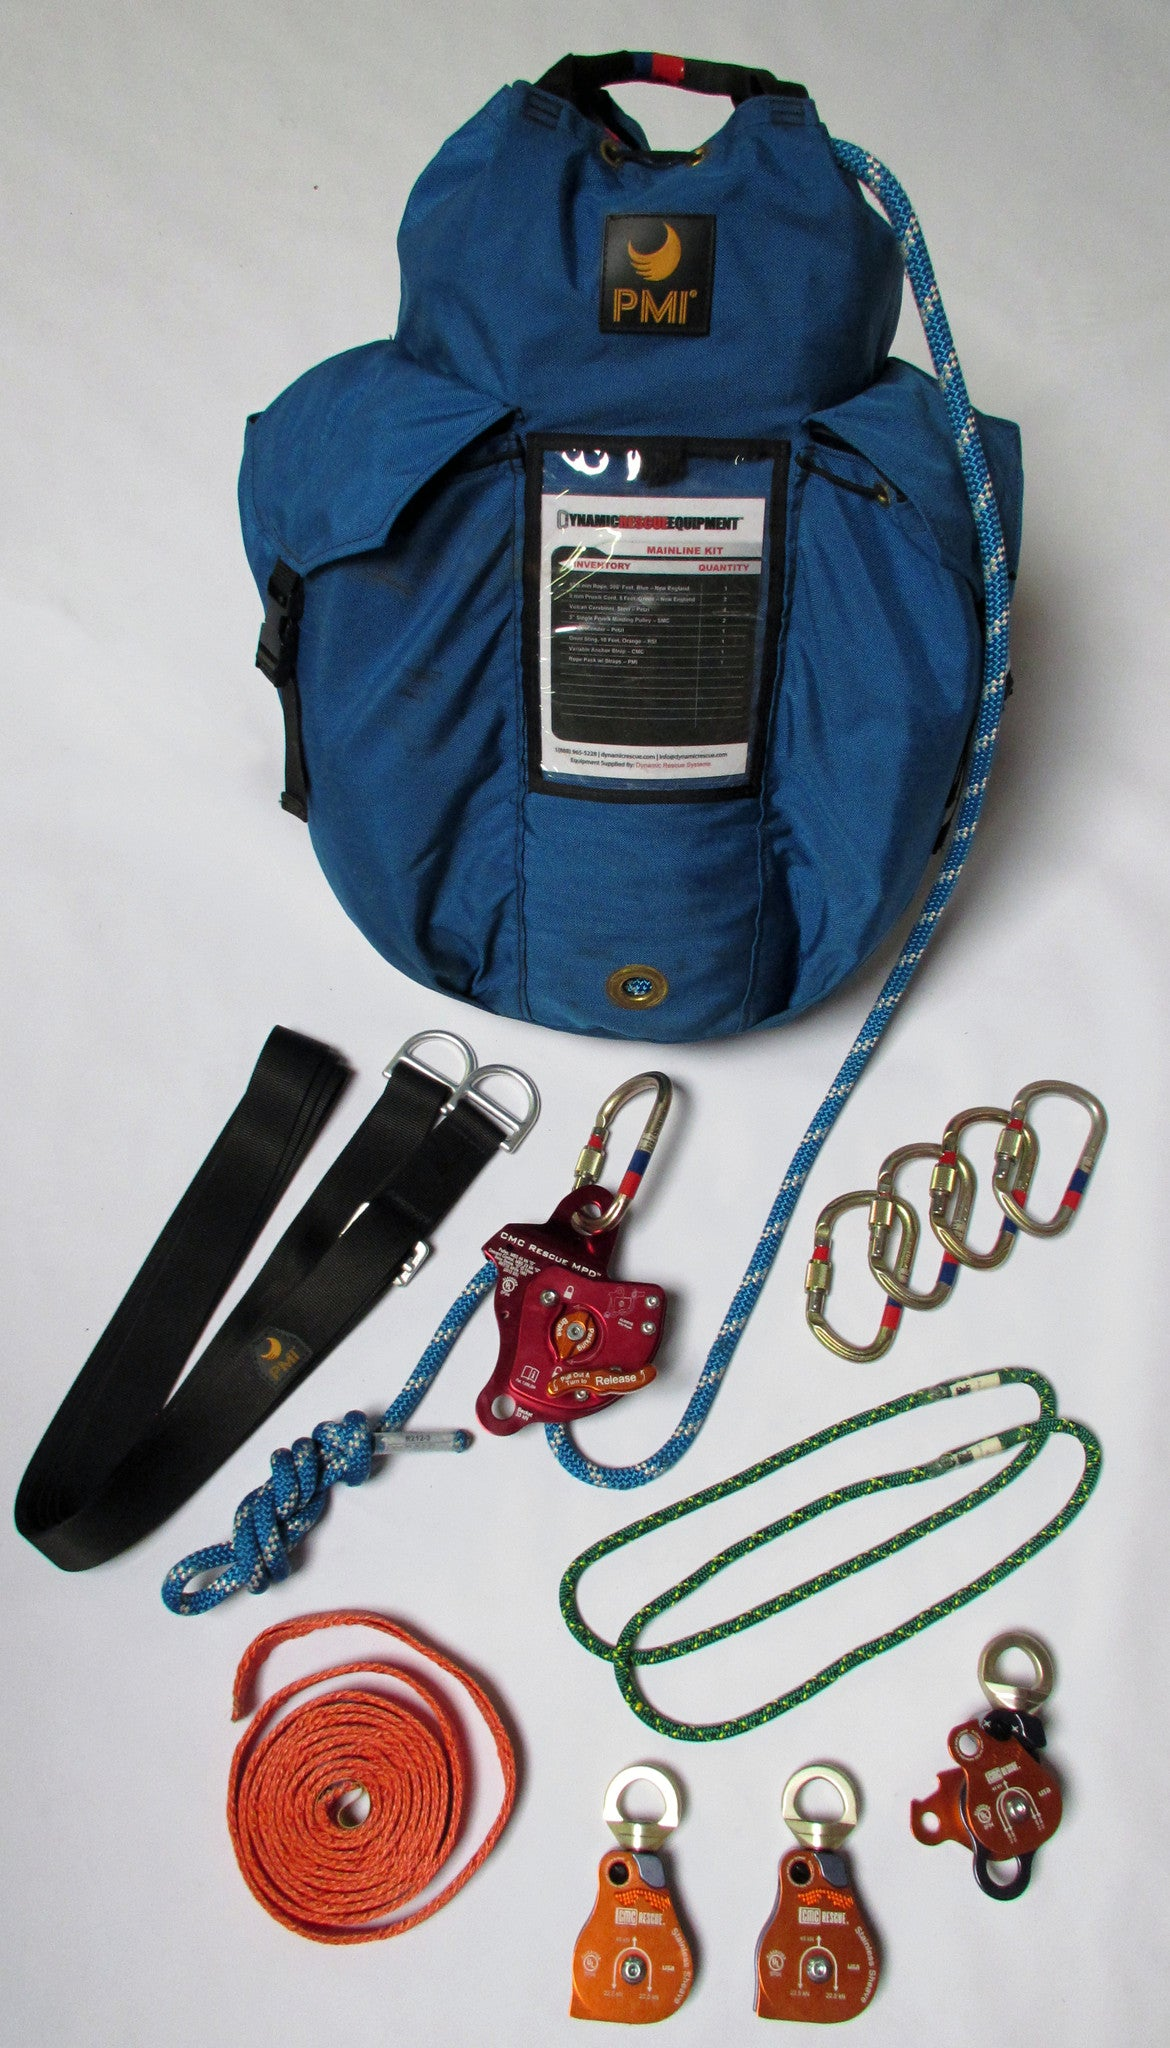 Pre-Packaged Mainline Kit for MPD - Dynamic Rescue - Dynamic Rescue Systems - Dynamic Rescue